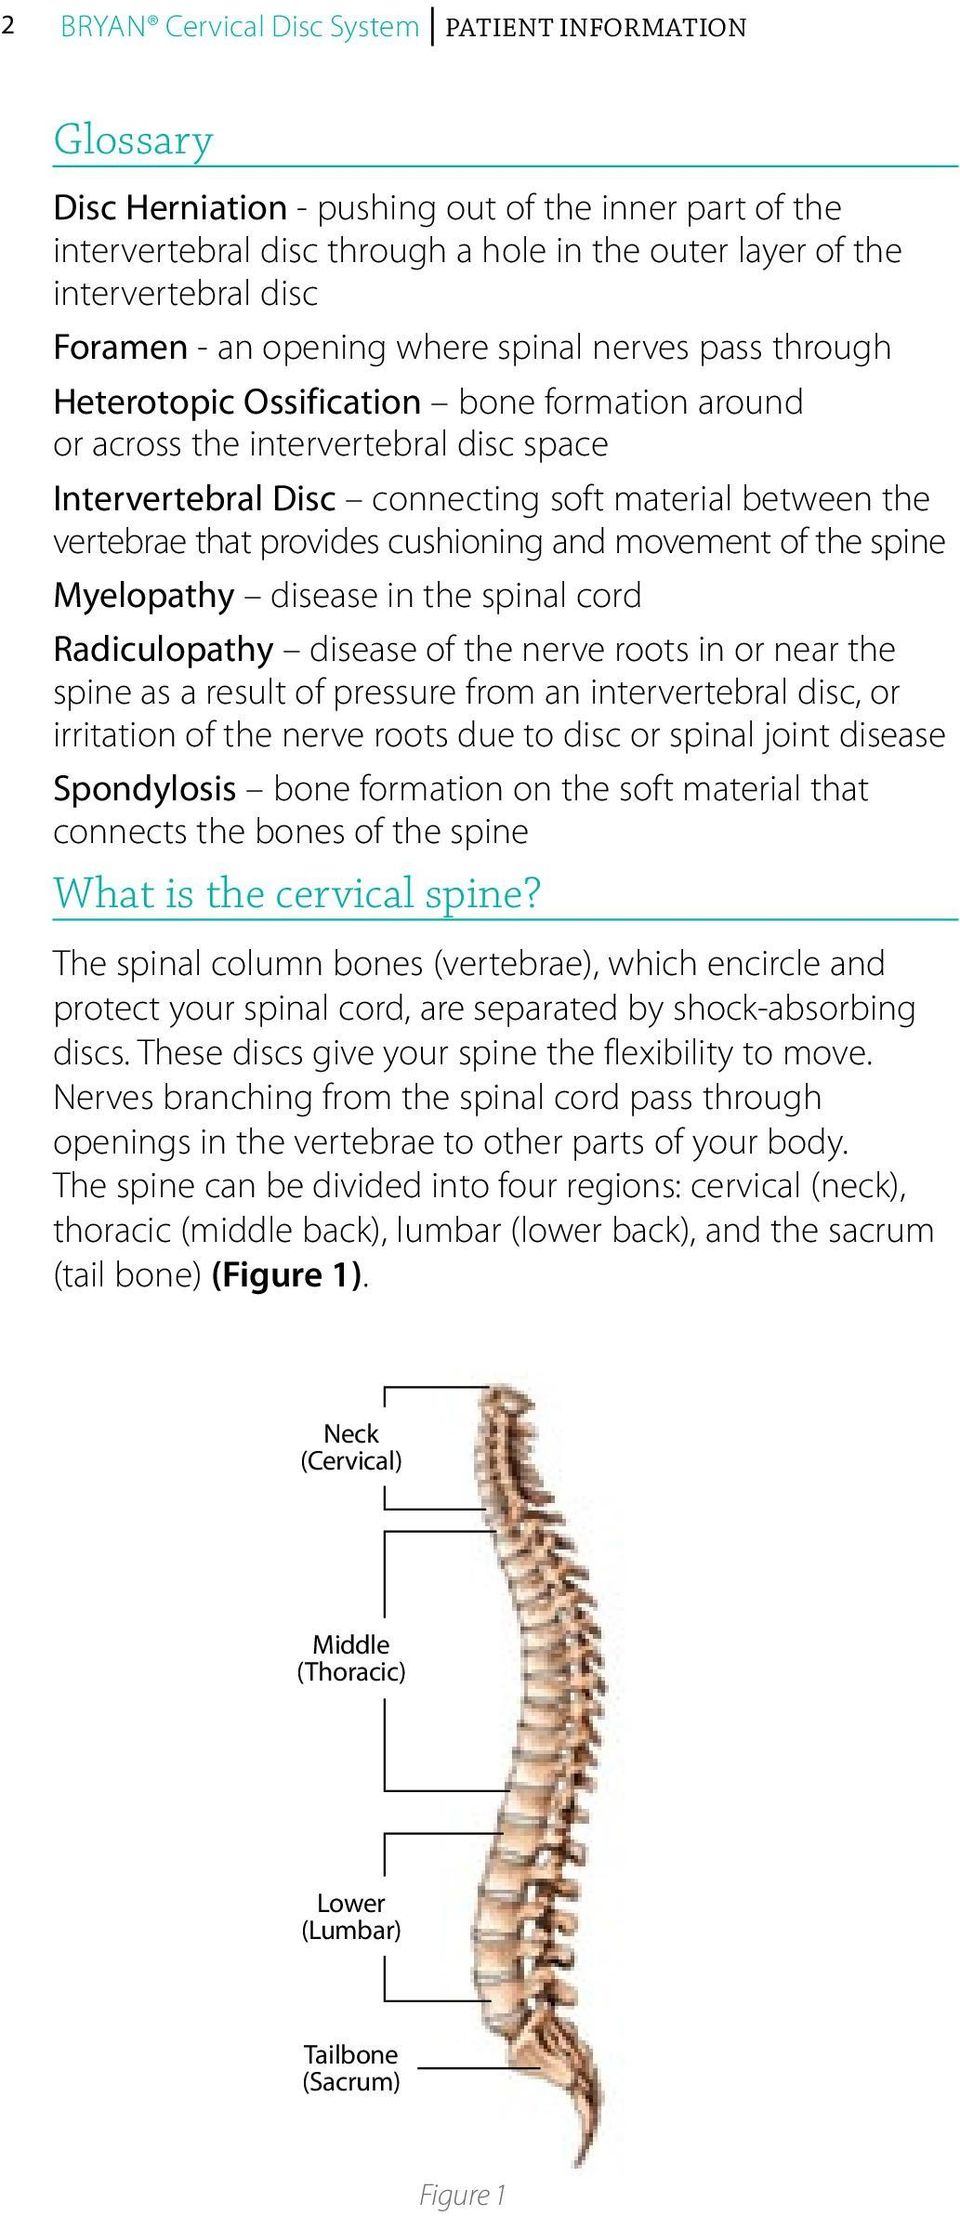 vertebrae that provides cushioning and movement of the spine Myelopathy disease in the spinal cord Radiculopathy disease of the nerve roots in or near the spine as a result of pressure from an